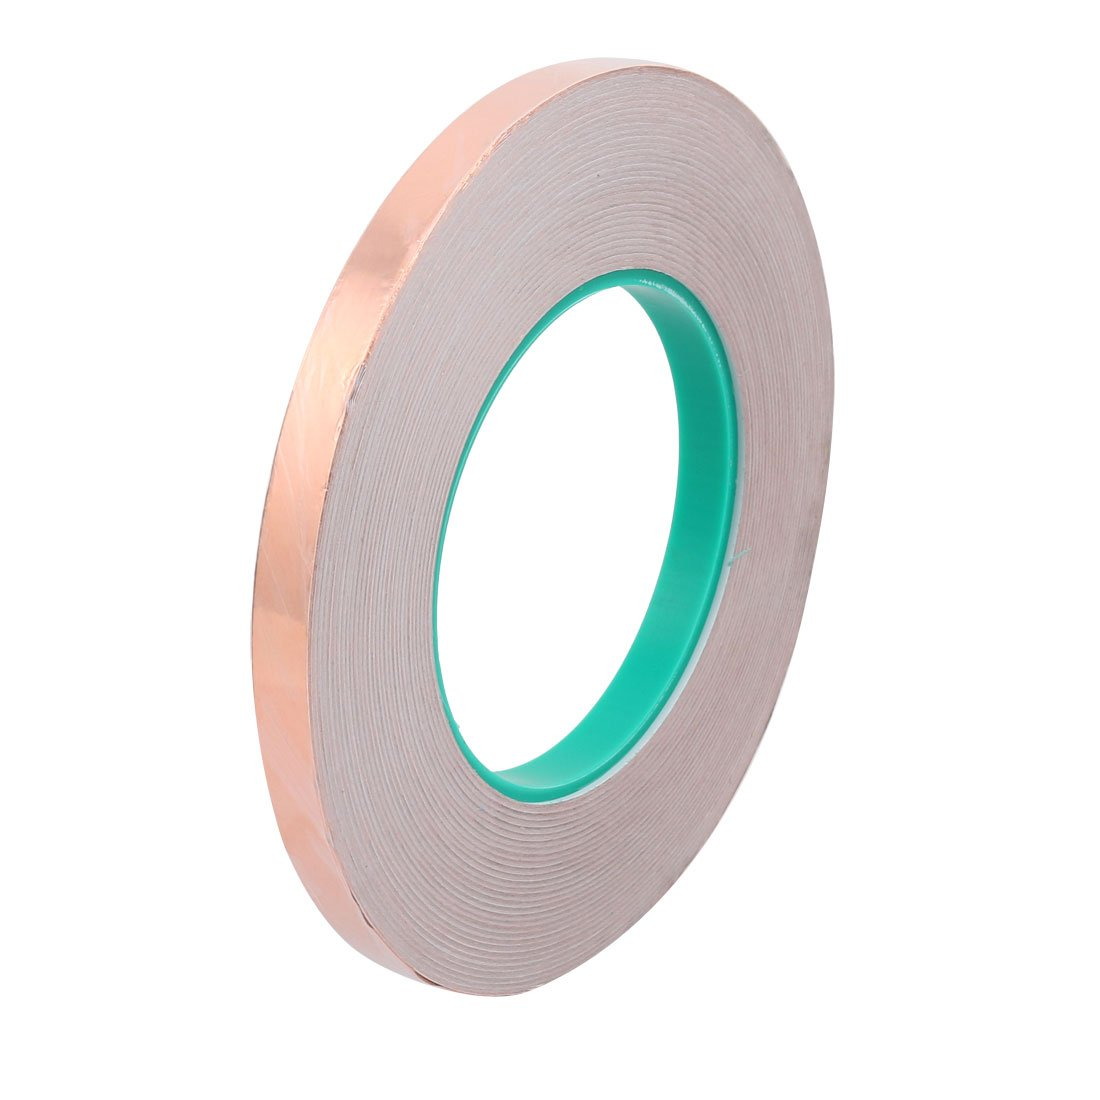 uxcell 10mm Width 50M Length DIY Adhesive Double Sided Conductive Copper Foil Tape